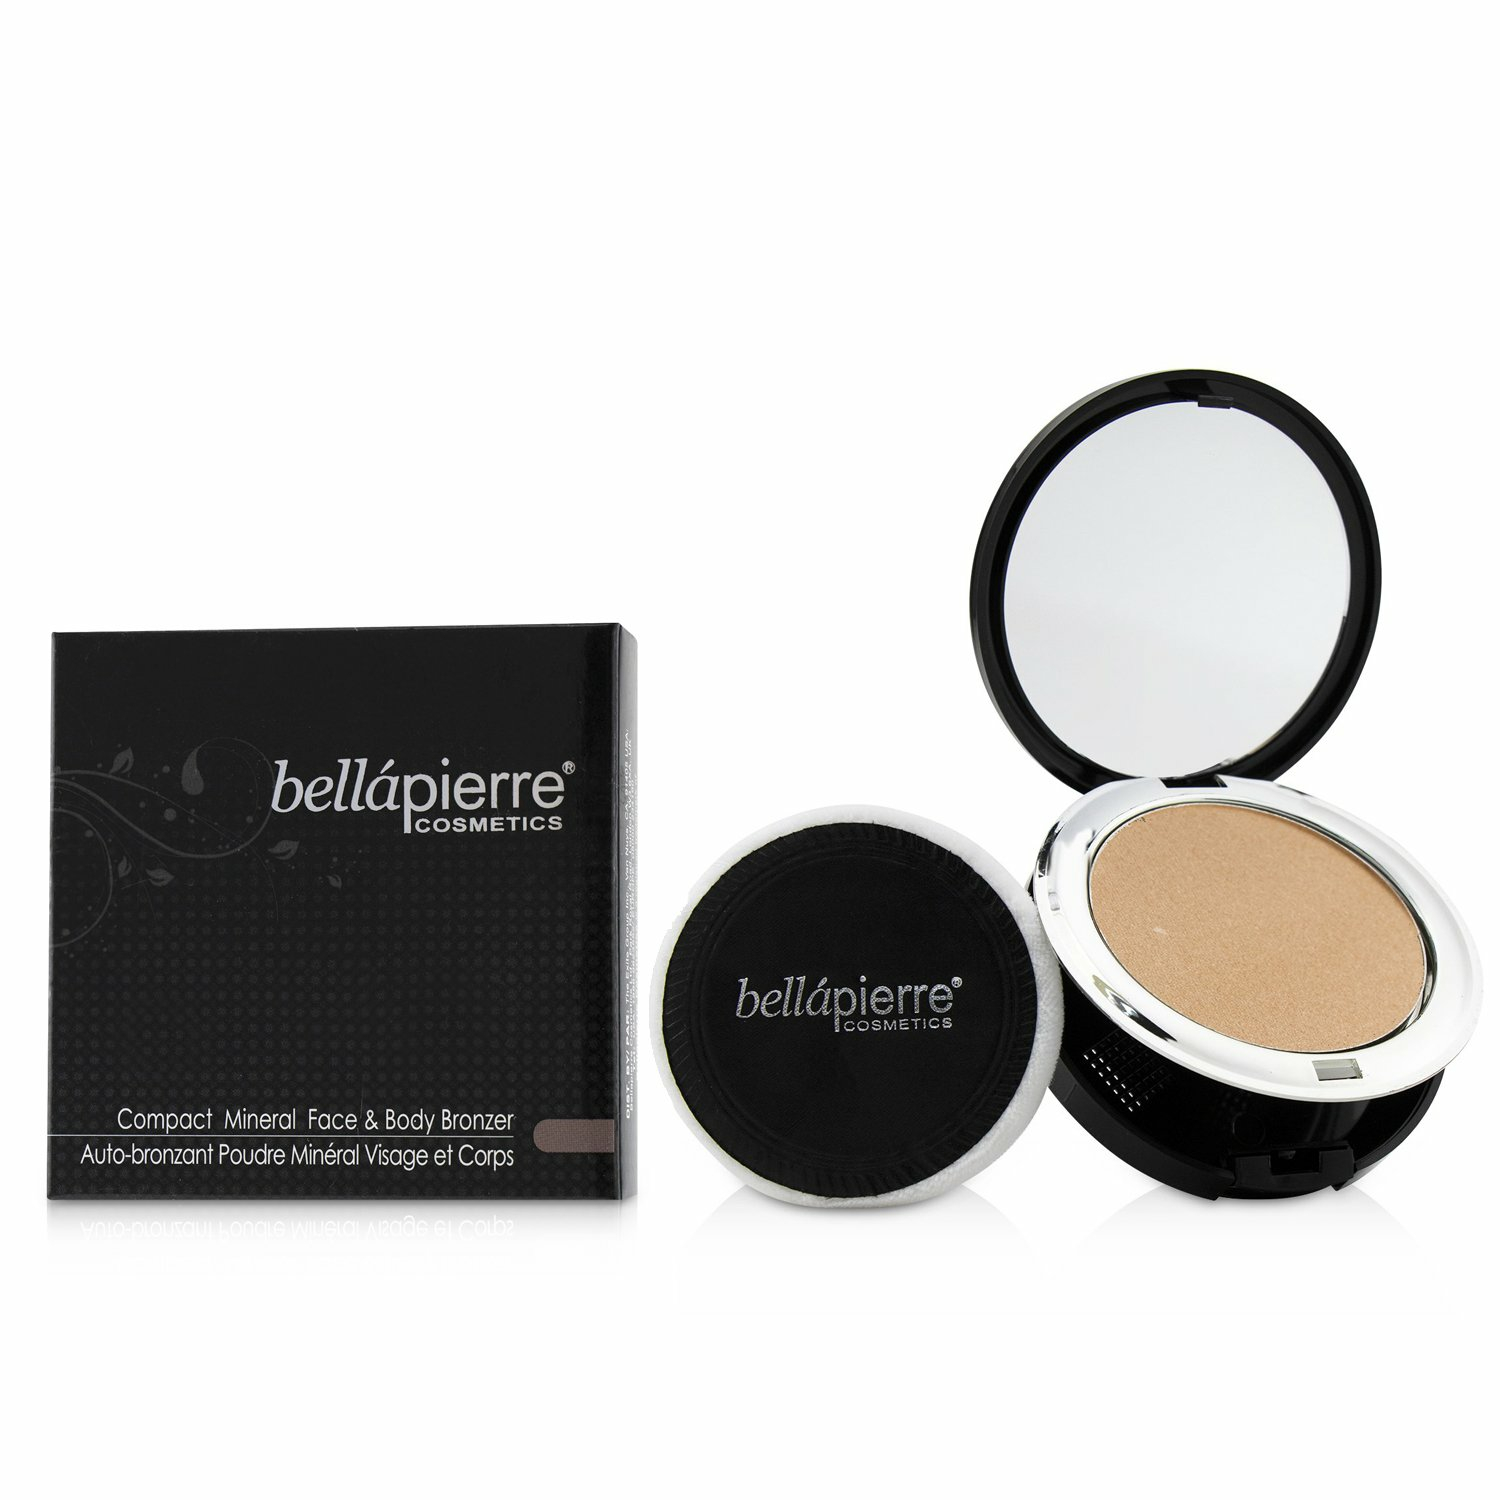 Bellapierre Cosmetics Women's # Peony Compact Mineral Face & Body Bronzer Bronzers Highlighter